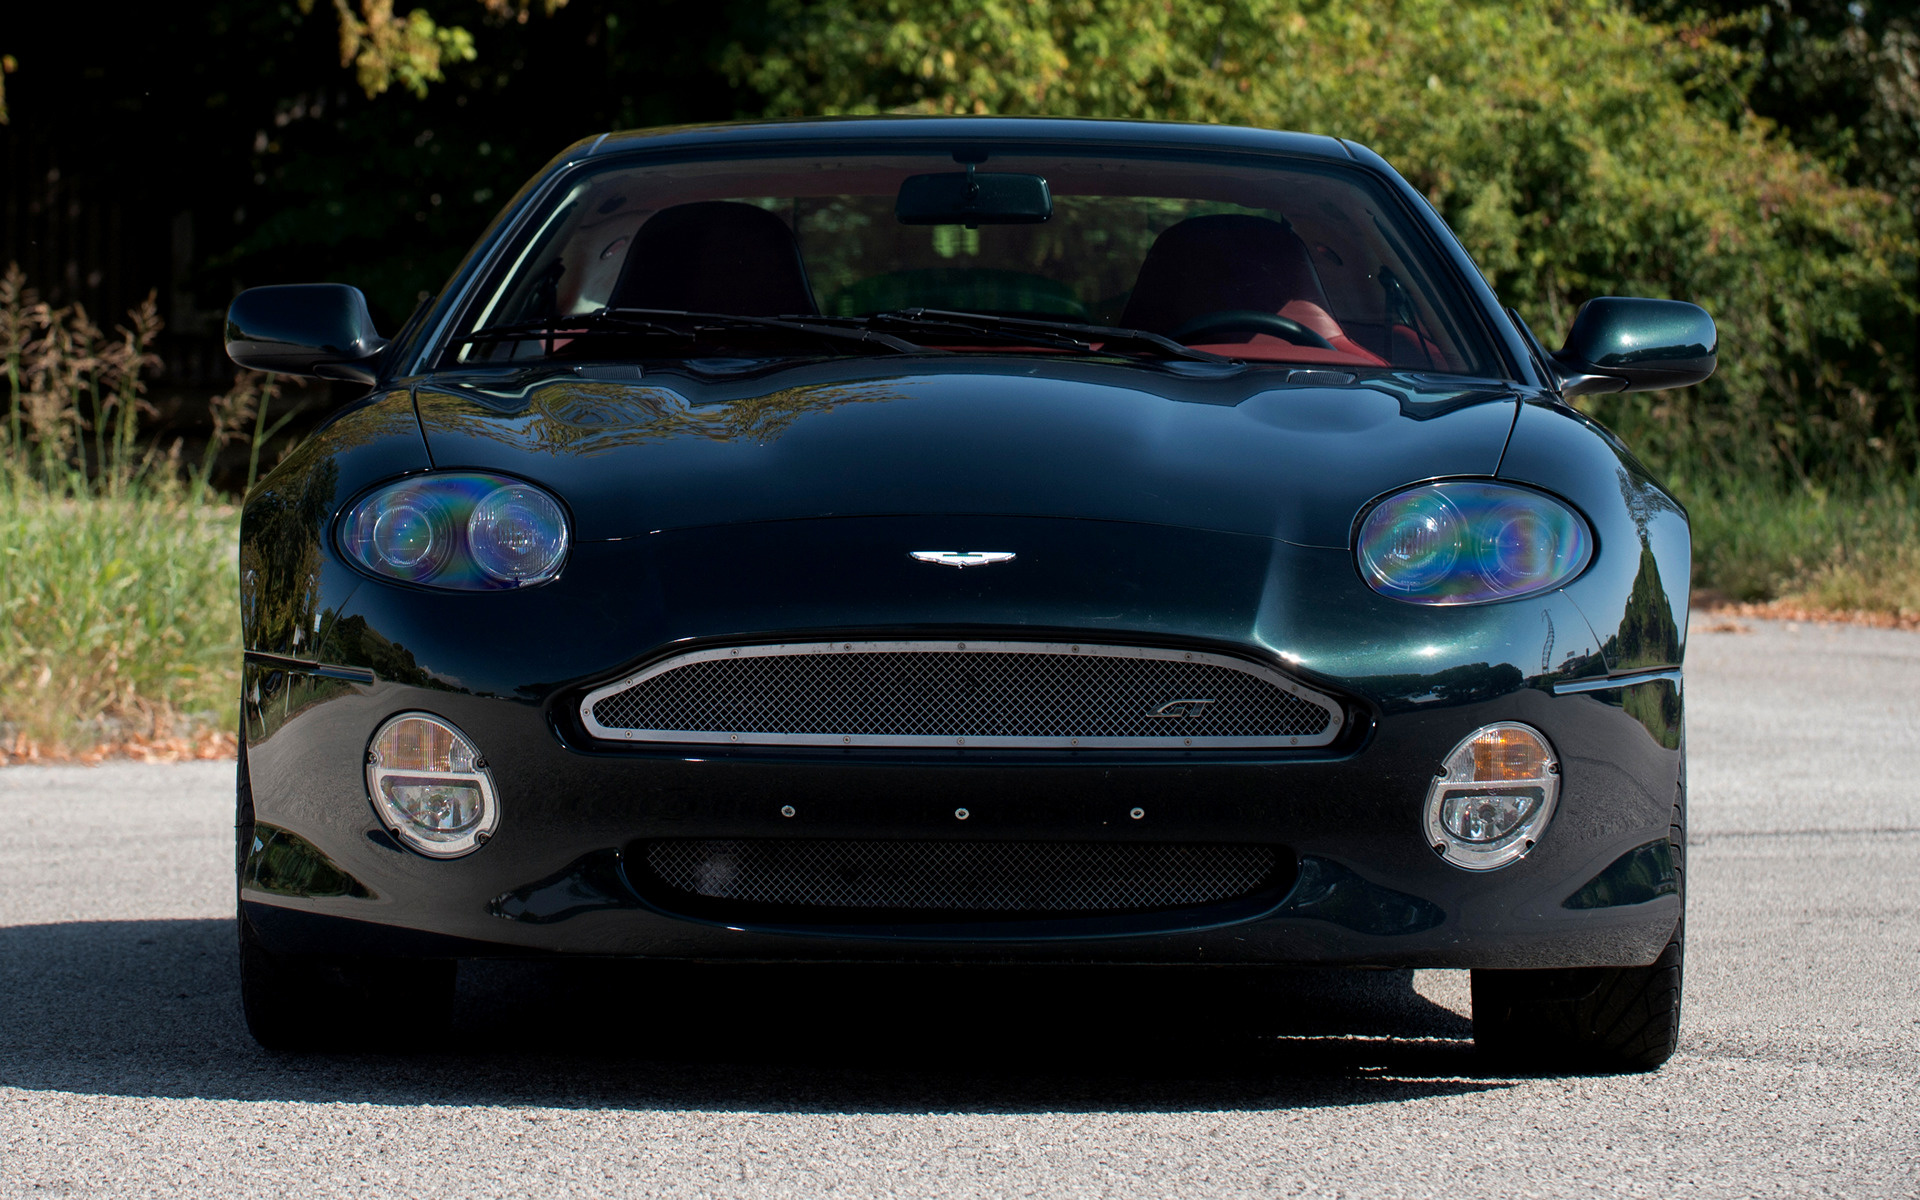 aston martin db7 gt (2003) wallpapers and hd images - car pixel